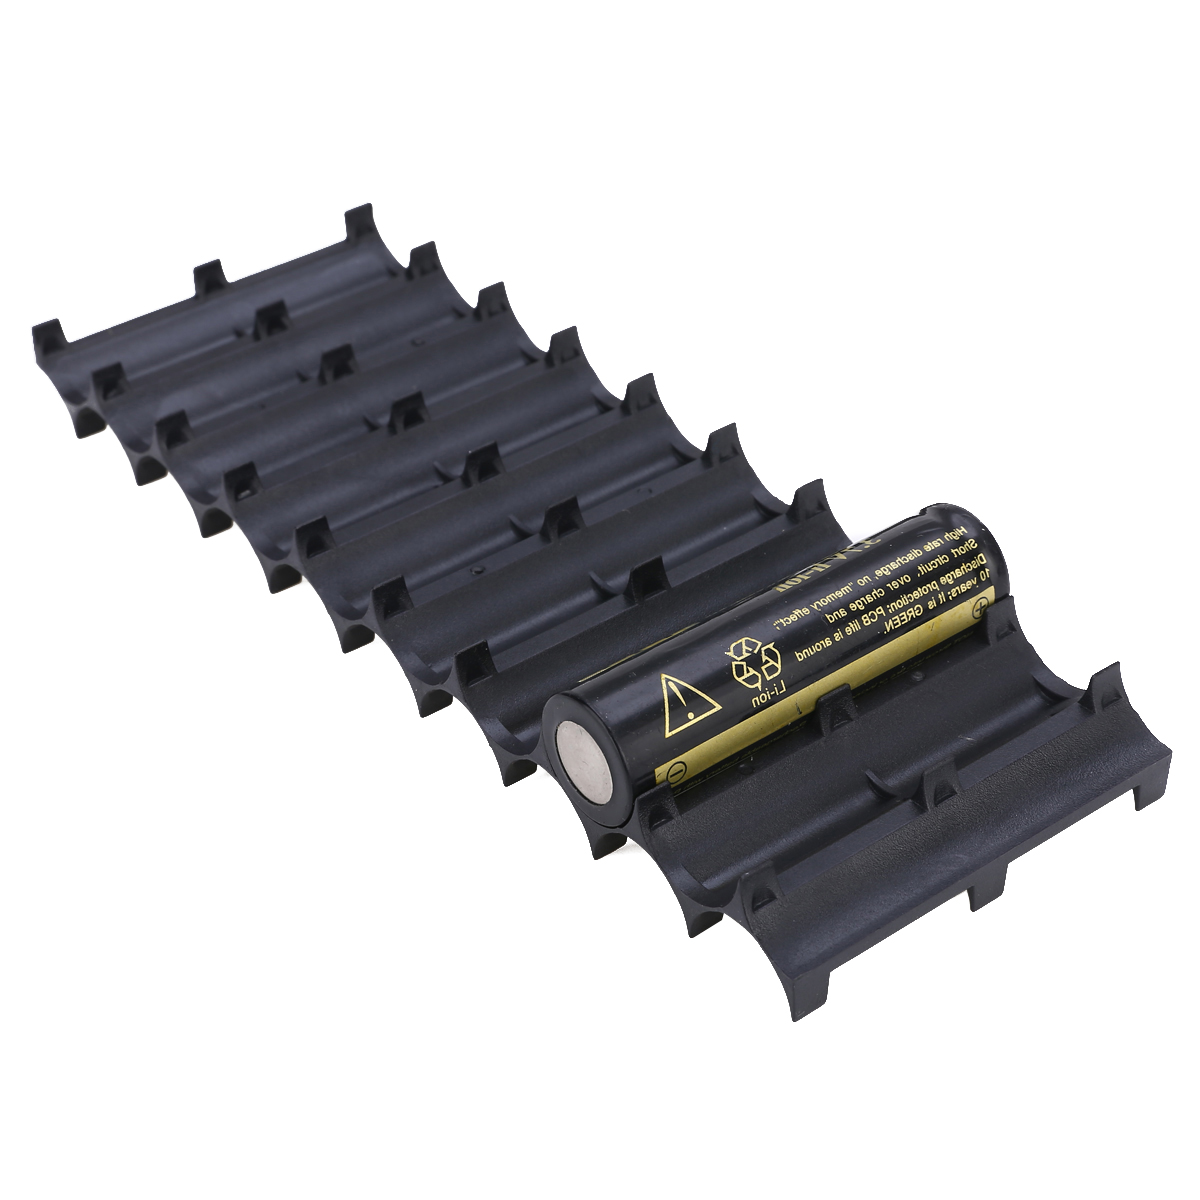 2pcs 10x <font><b>18650</b></font> <font><b>Battery</b></font> <font><b>Holder</b></font> <font><b>Cylindrical</b></font> <font><b>Battery</b></font> <font><b>Bracket</b></font> <font><b>18650</b></font> Case Cell <font><b>Holder</b></font> Li-ion Cell <font><b>Batteries</b></font> <font><b>Holders</b></font> image